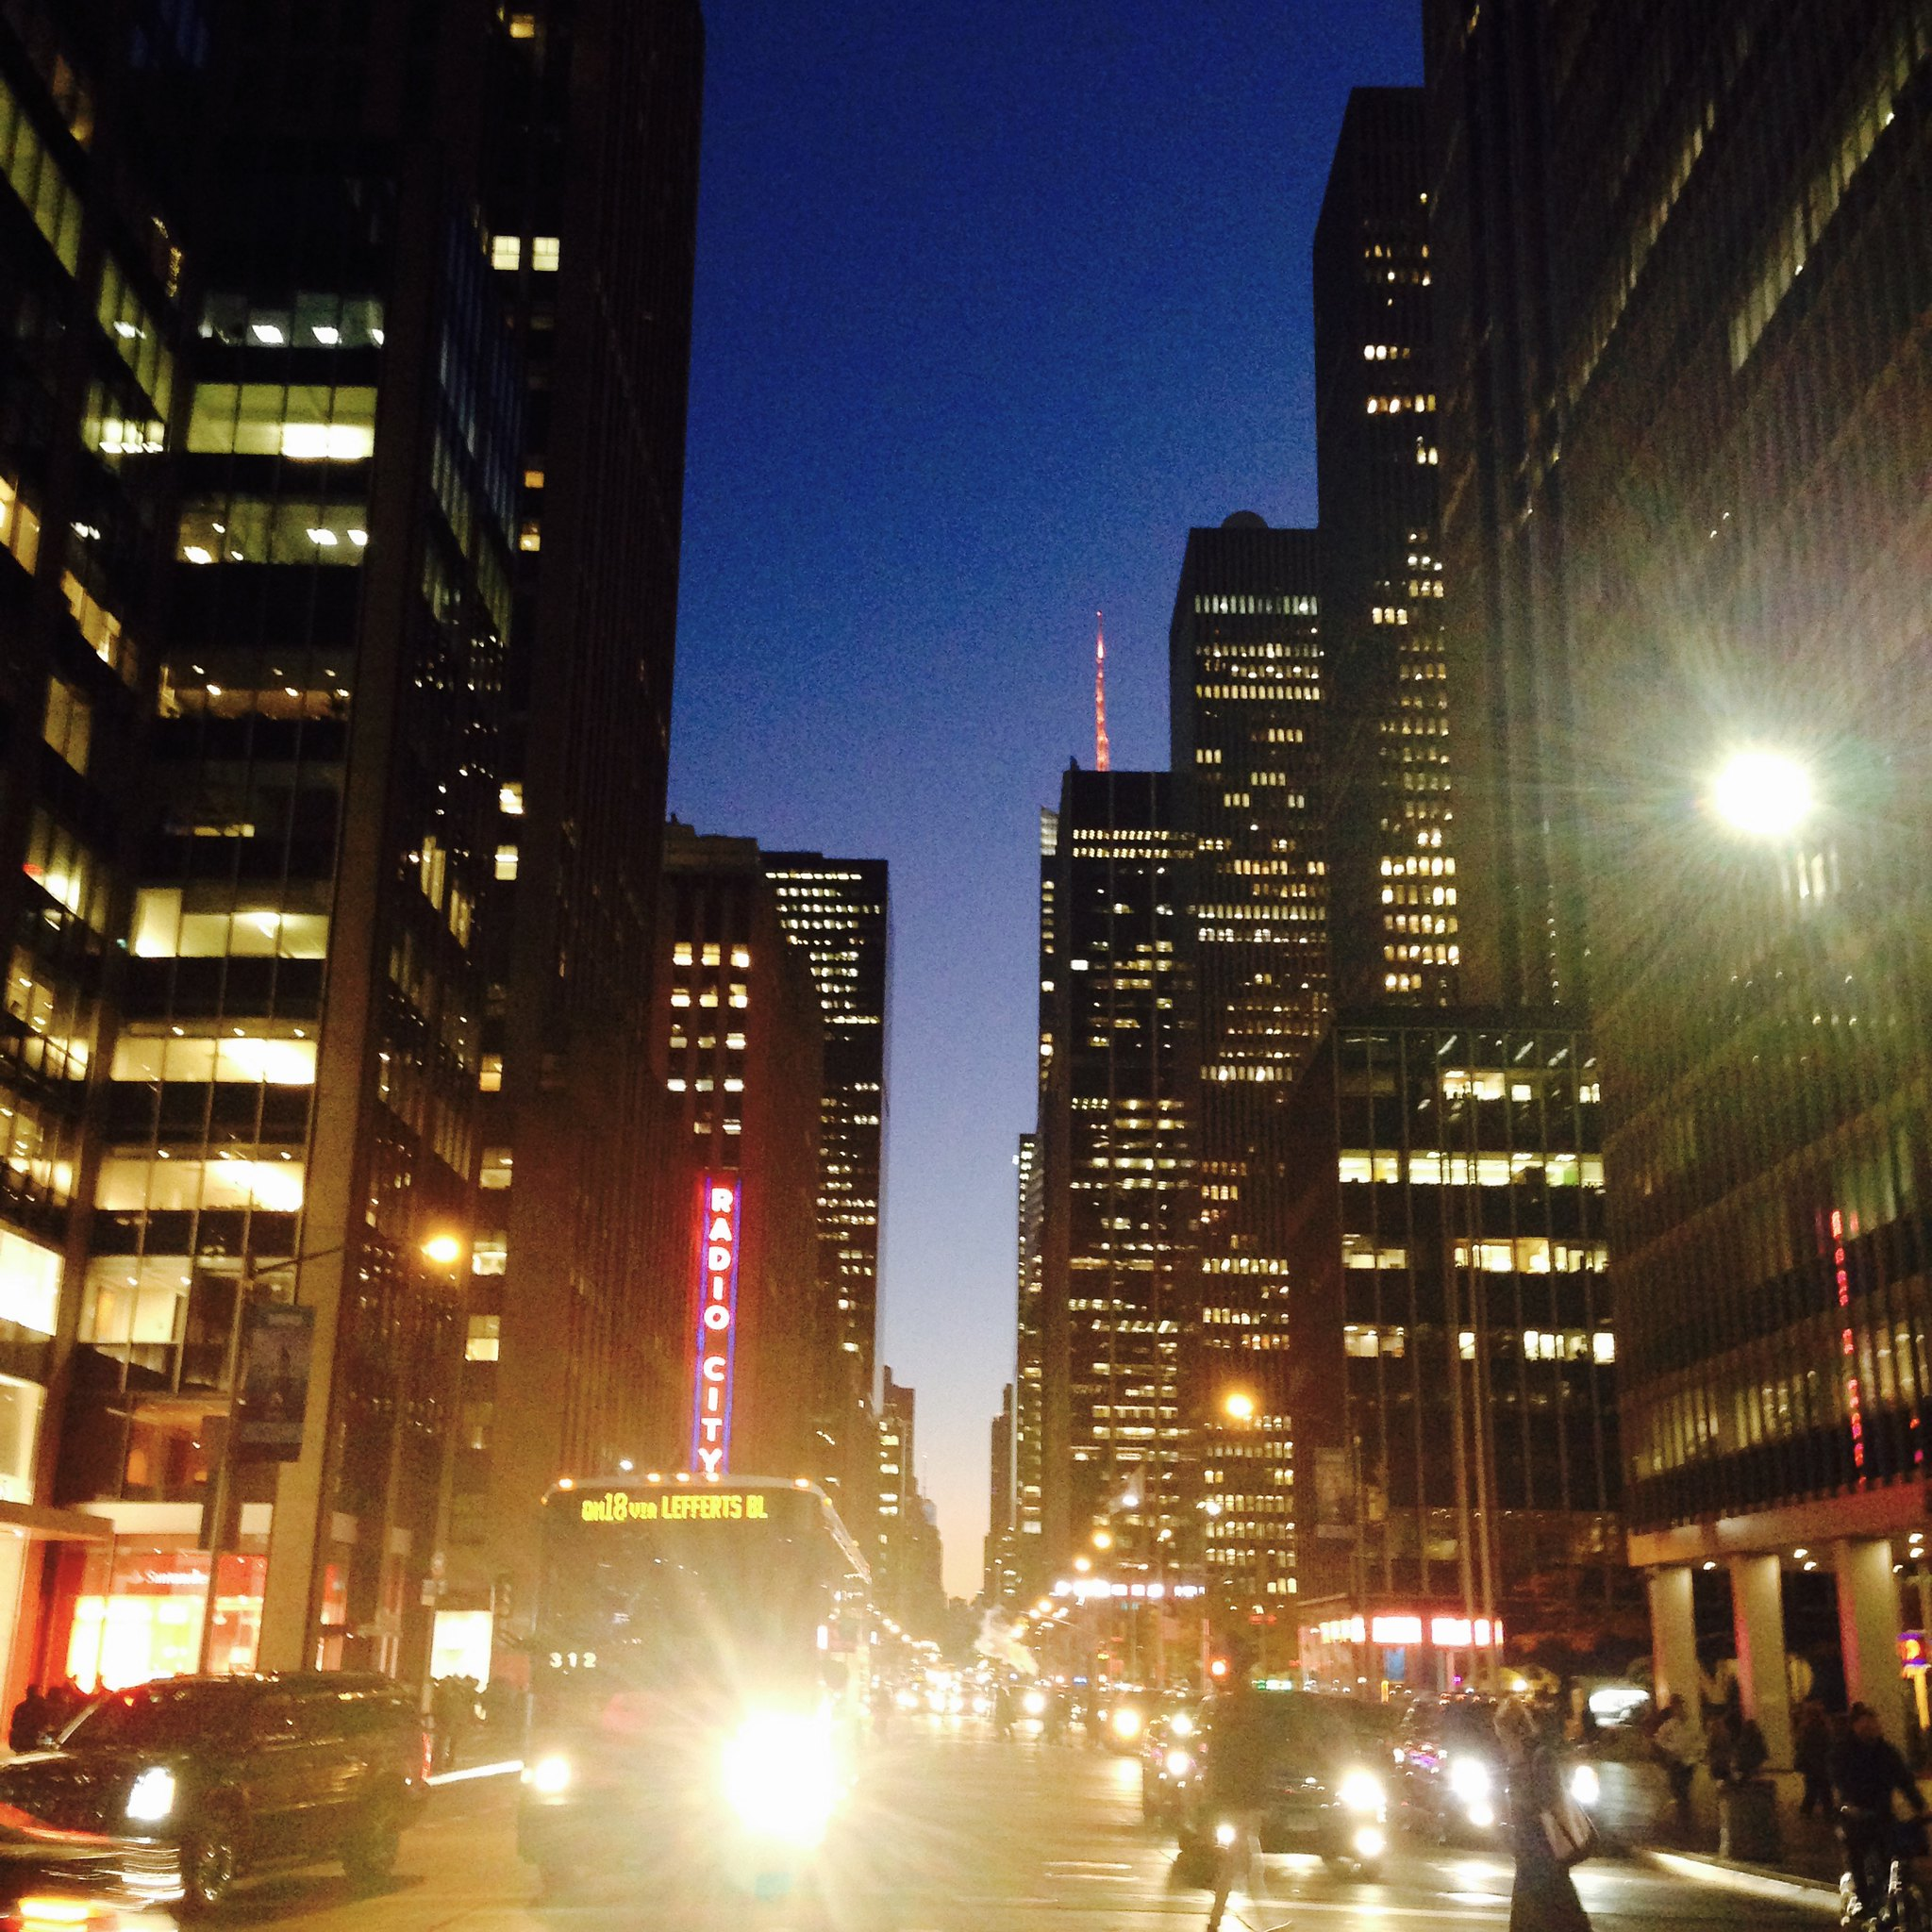 6th Ave at dusk